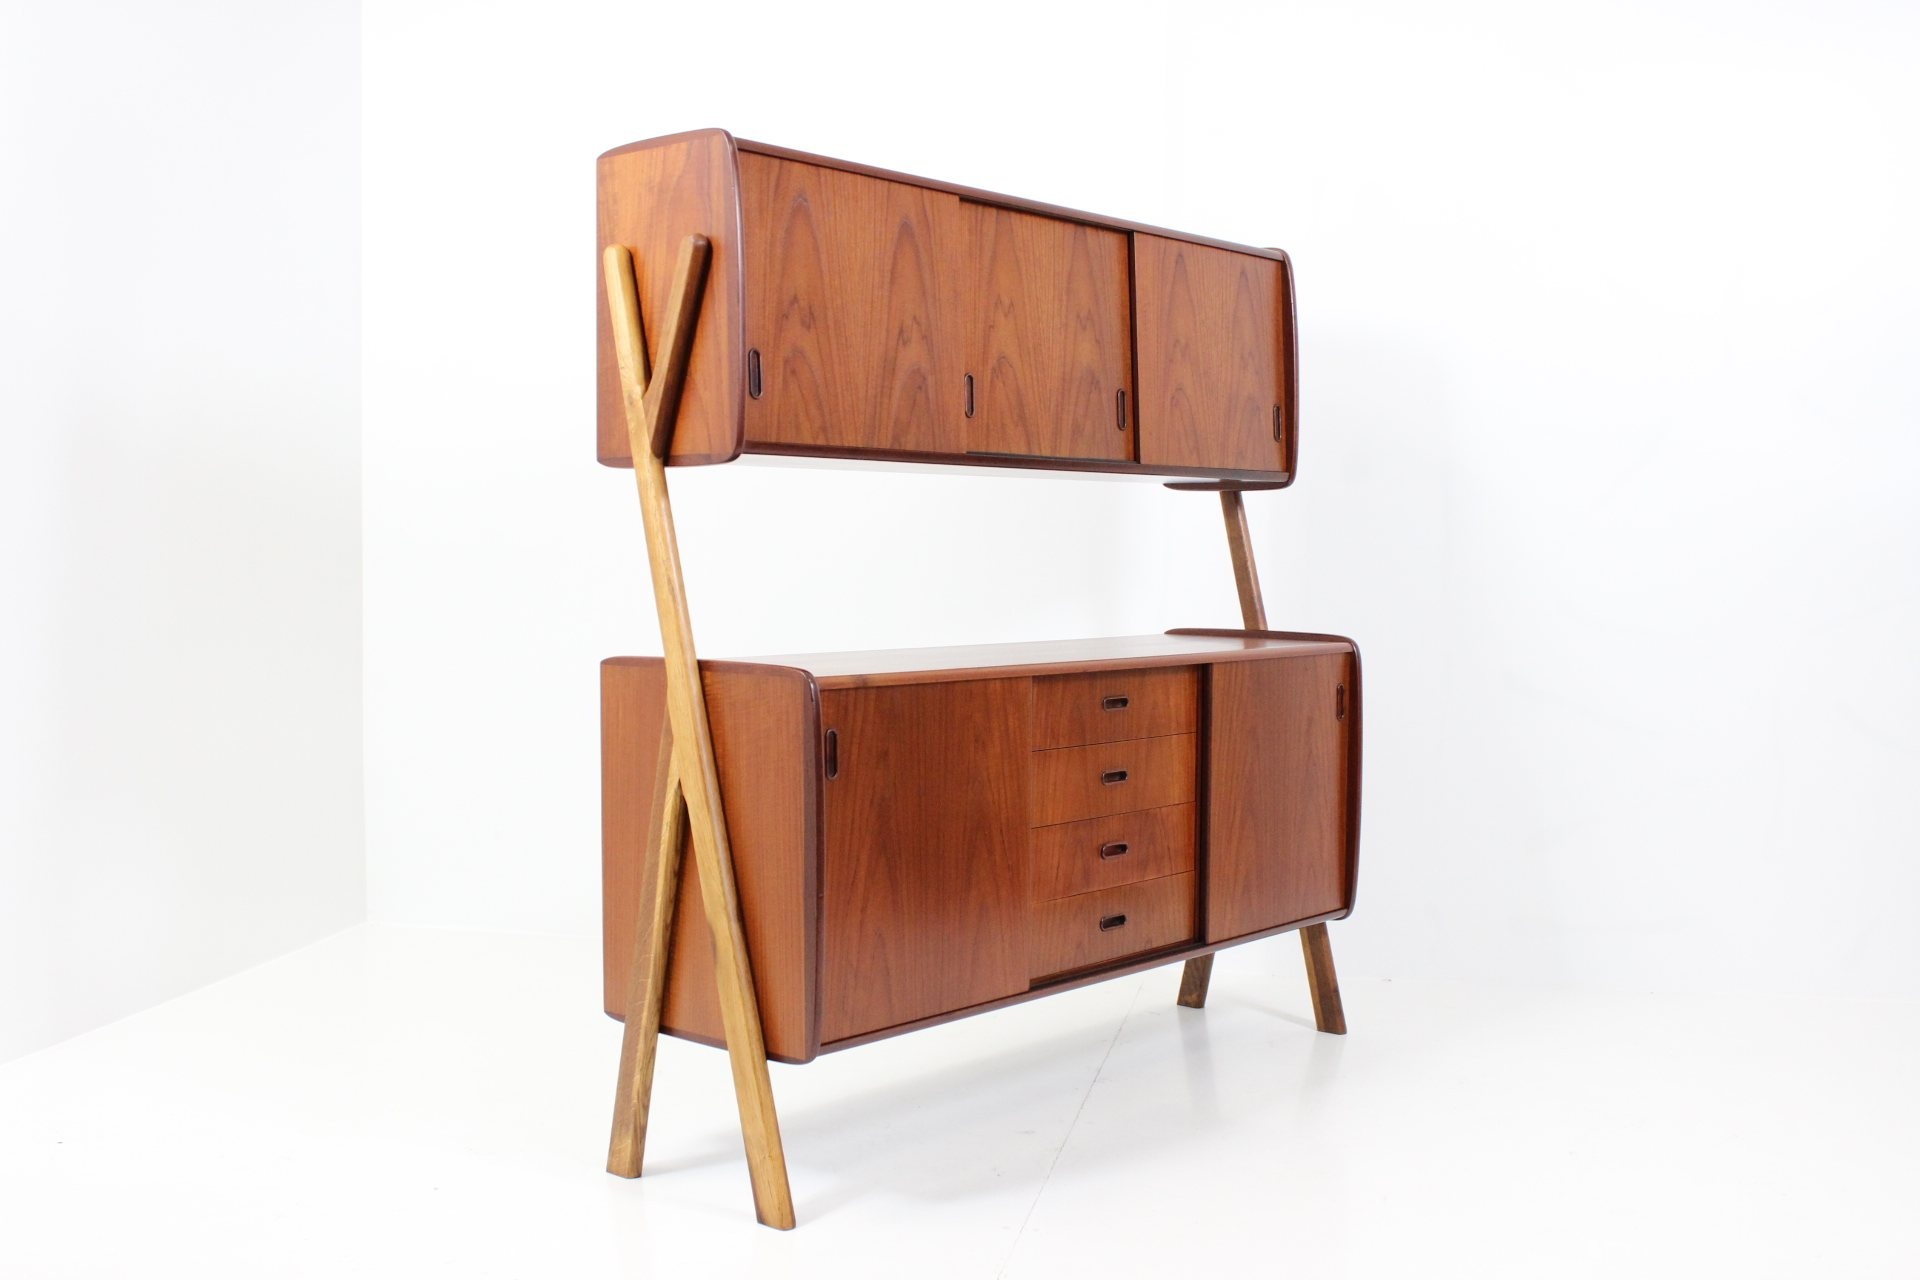 Retro Vintage Organic Shaped Standing Wall Unit in Teak